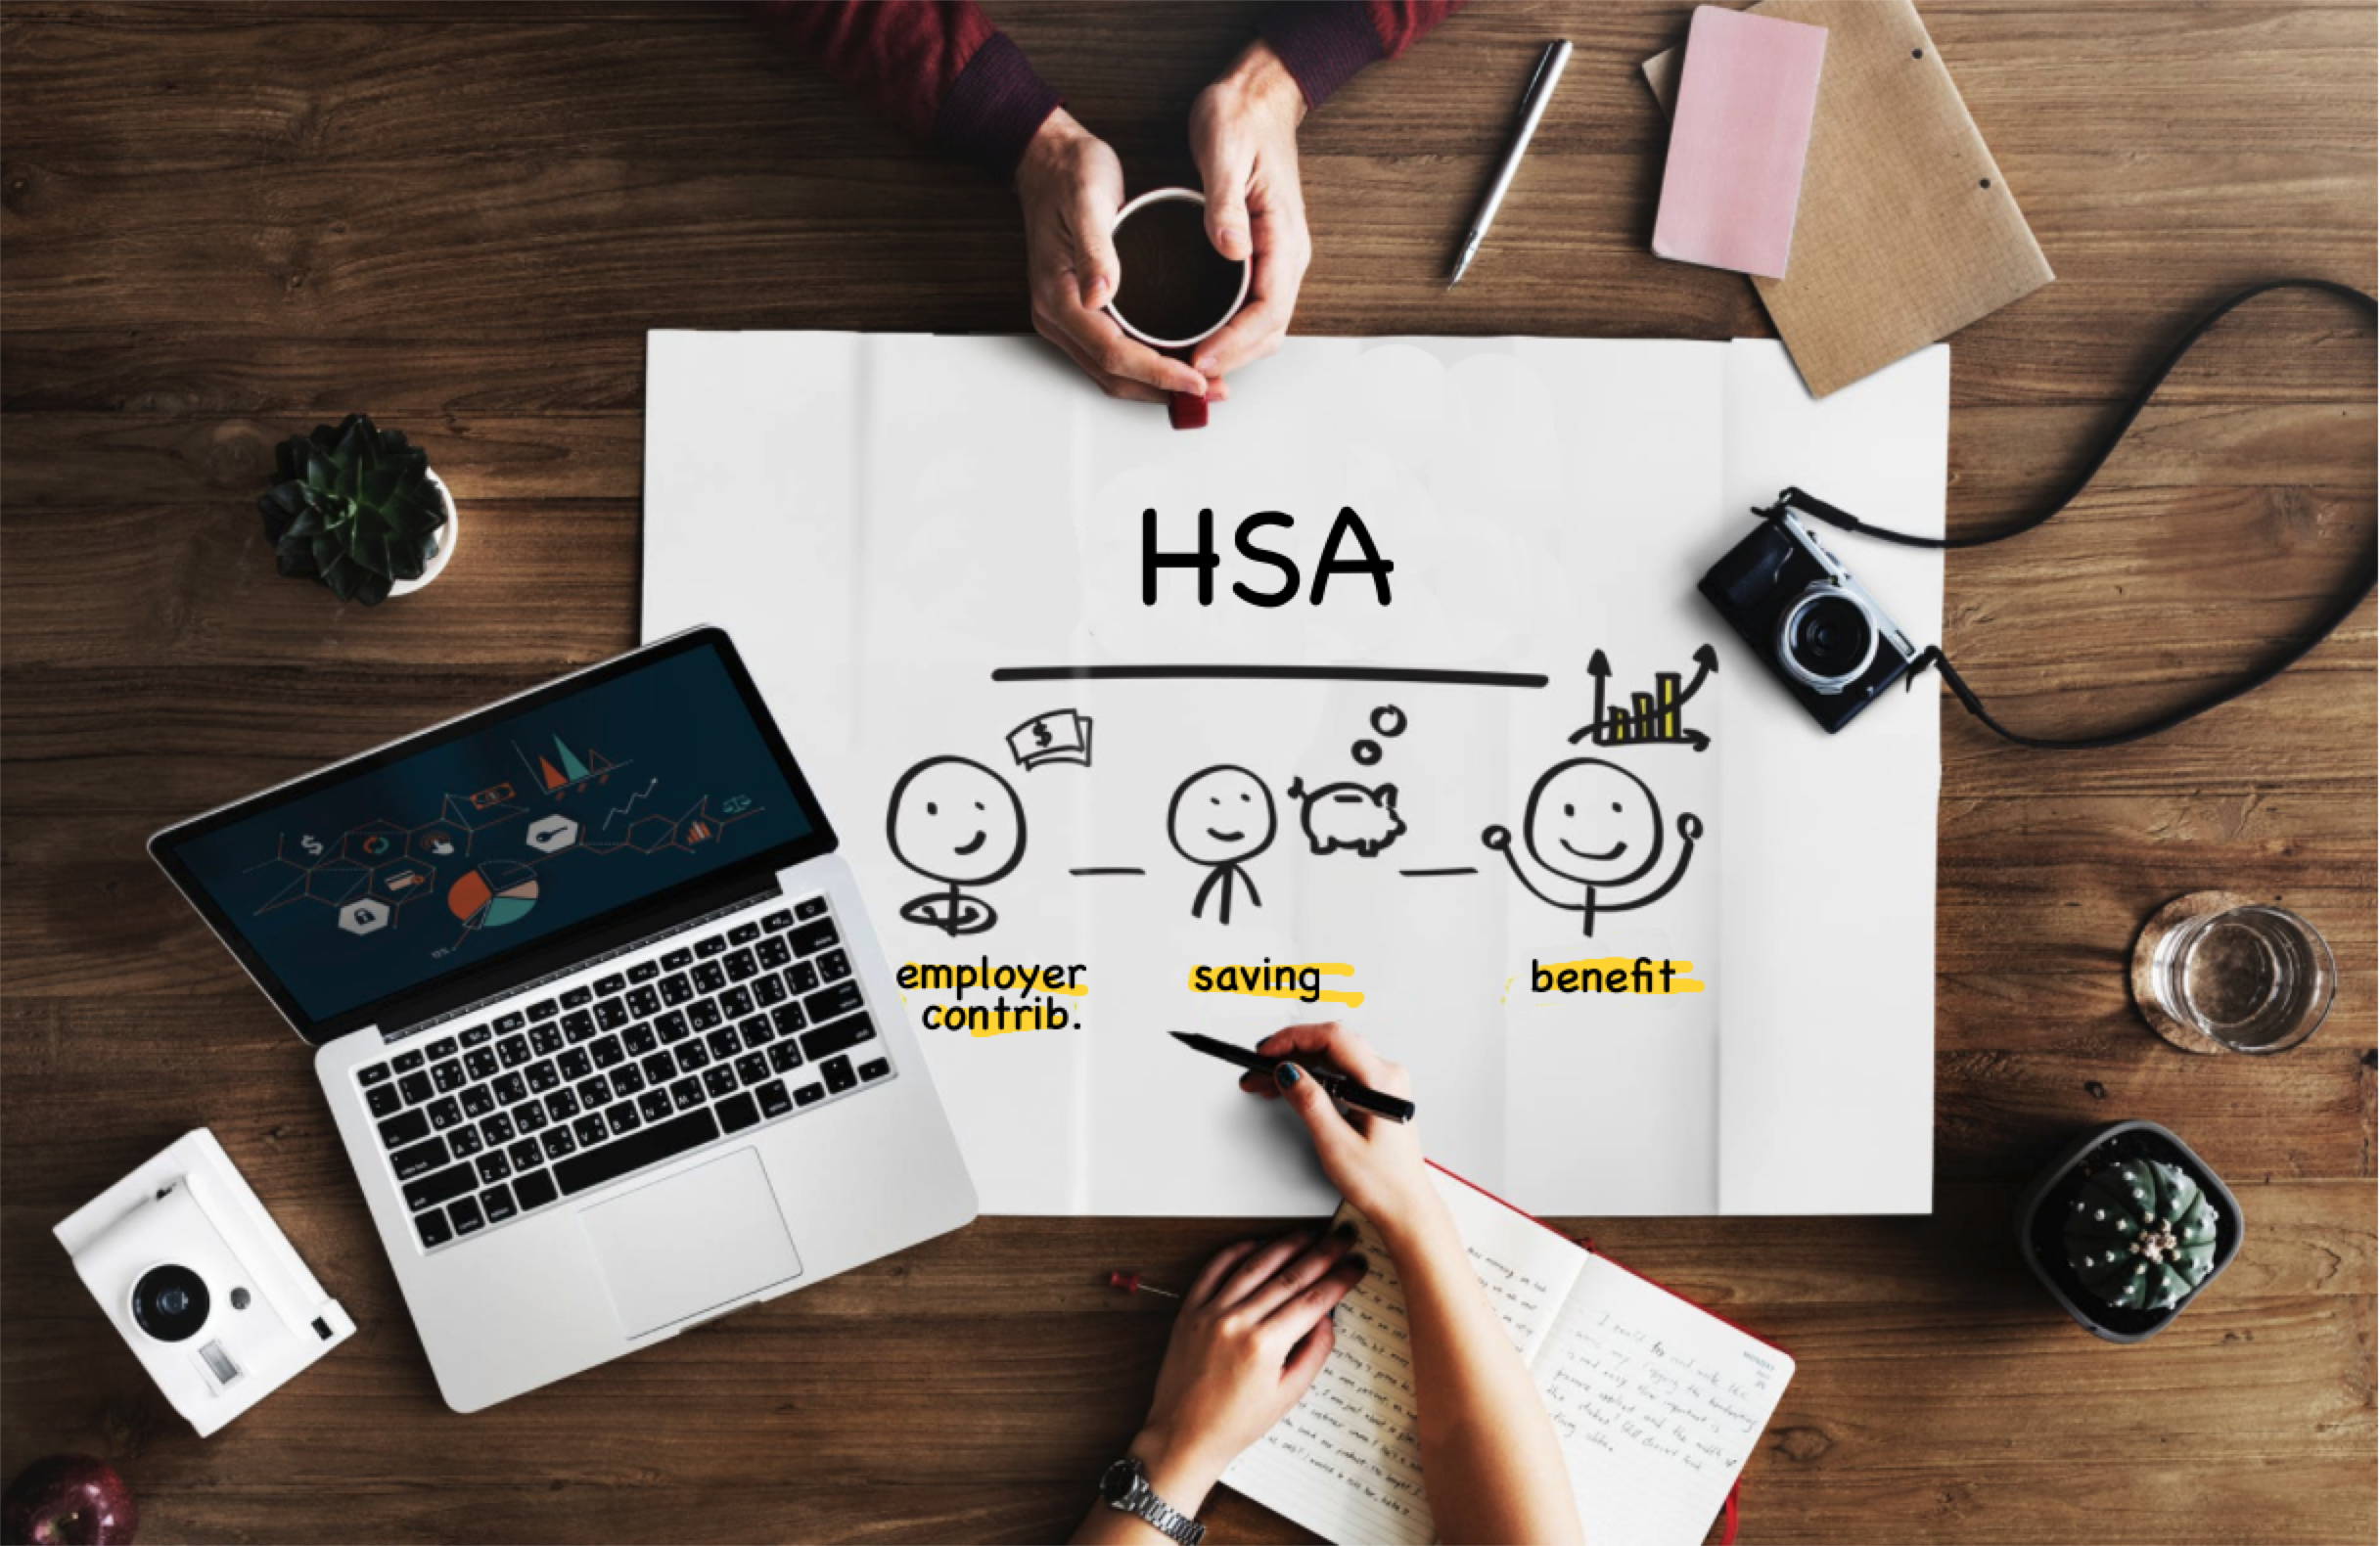 How to Drive HSA Adoption: Mitigate Employee Risk with Plan Design